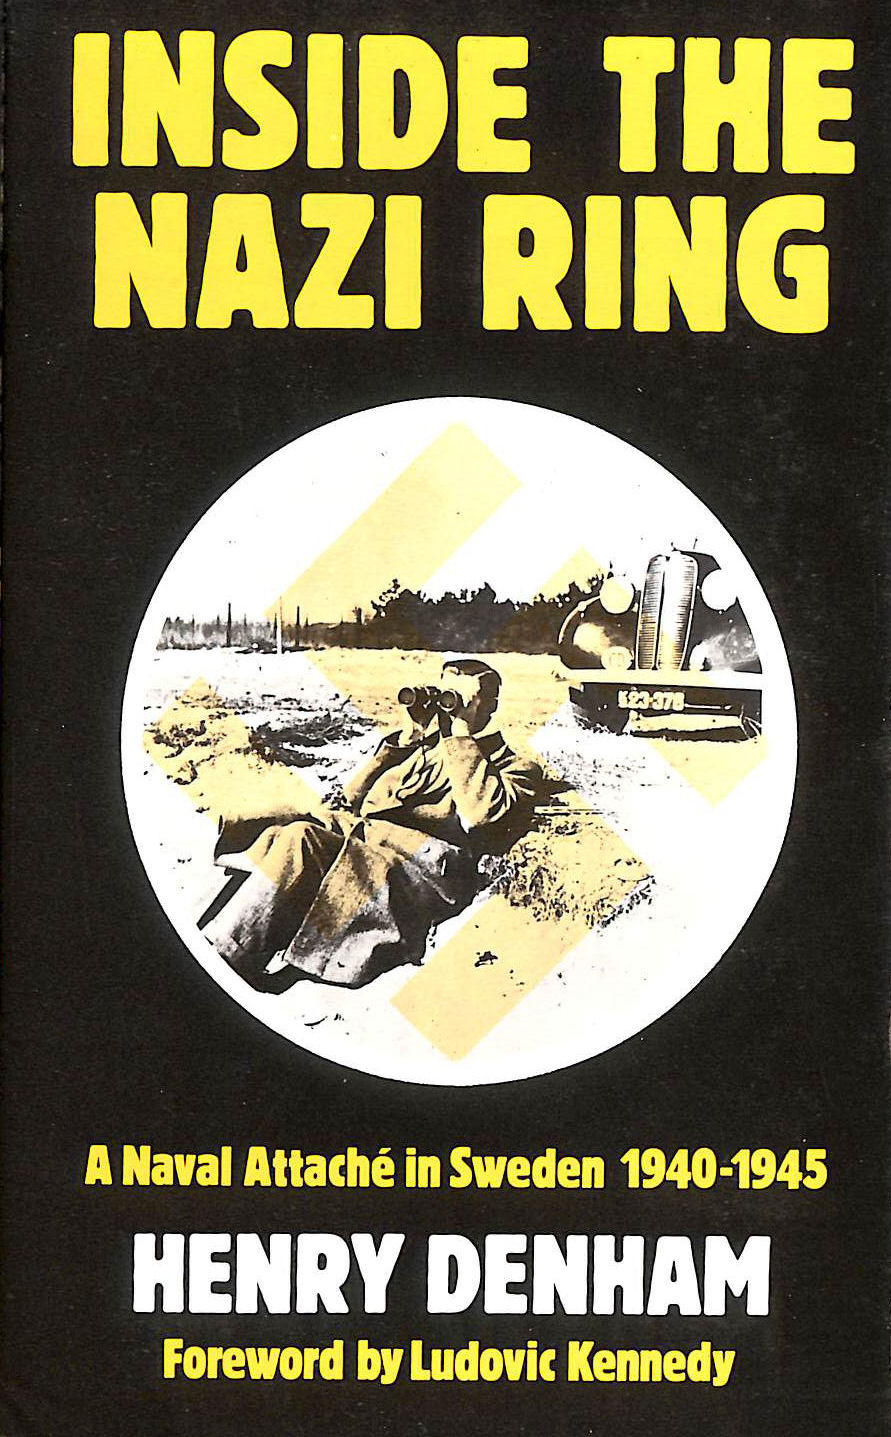 Image for Inside the Nazi Ring - A Naval Attache in Sweden 1940-1945